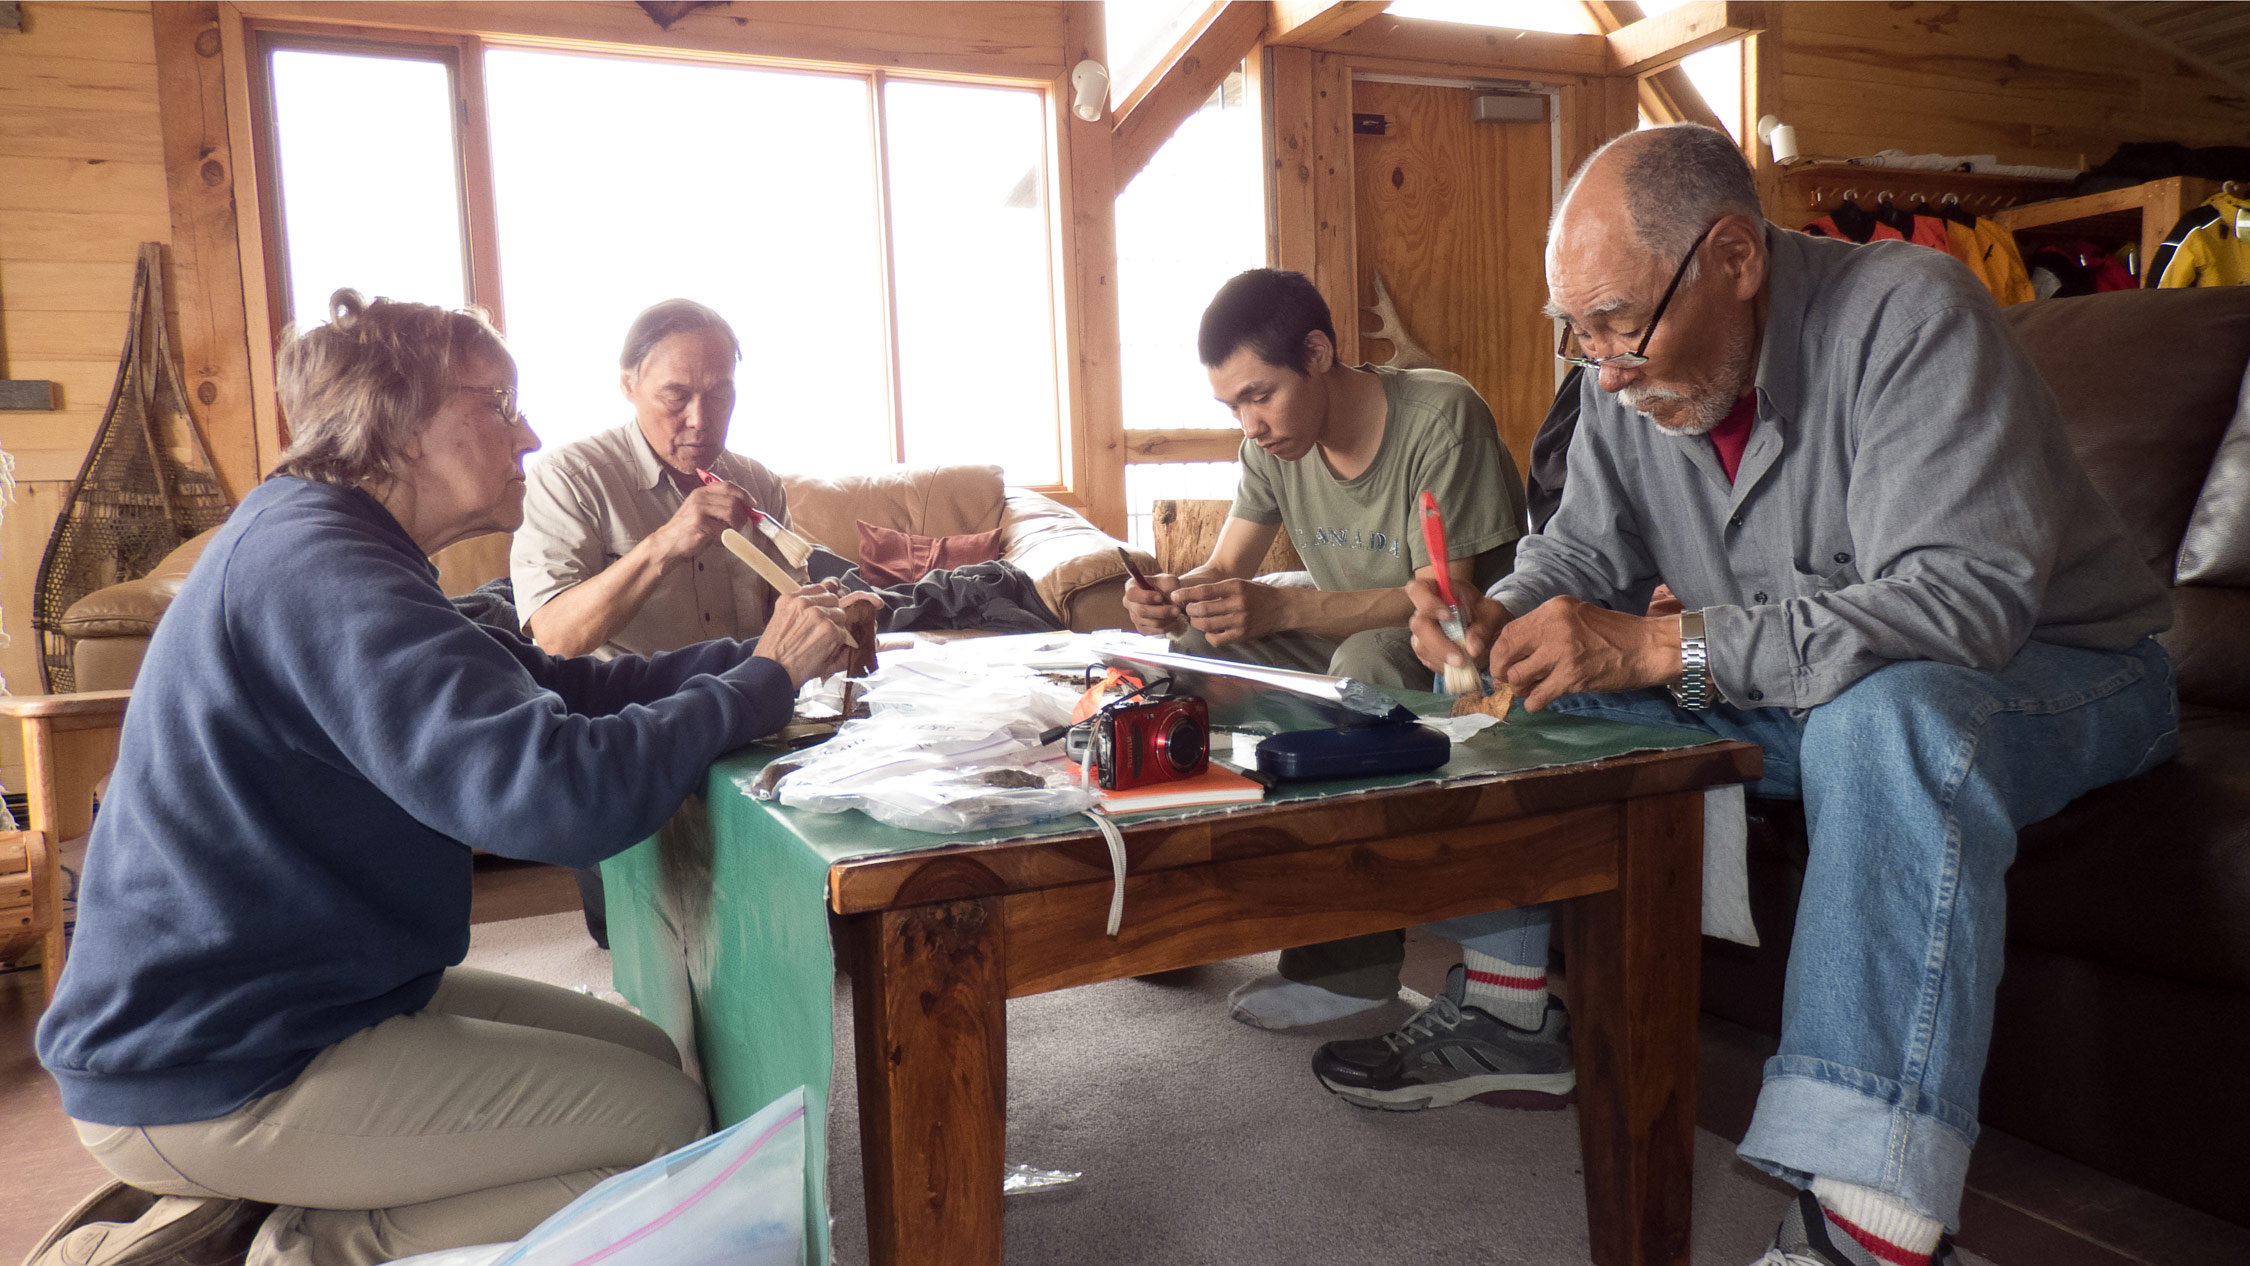 Preparing artifacts for carbon dating and other analyses at the lodge, from left: Virginia Petch, Luke Suluk, David Tassiuk, and Peter Alareak.